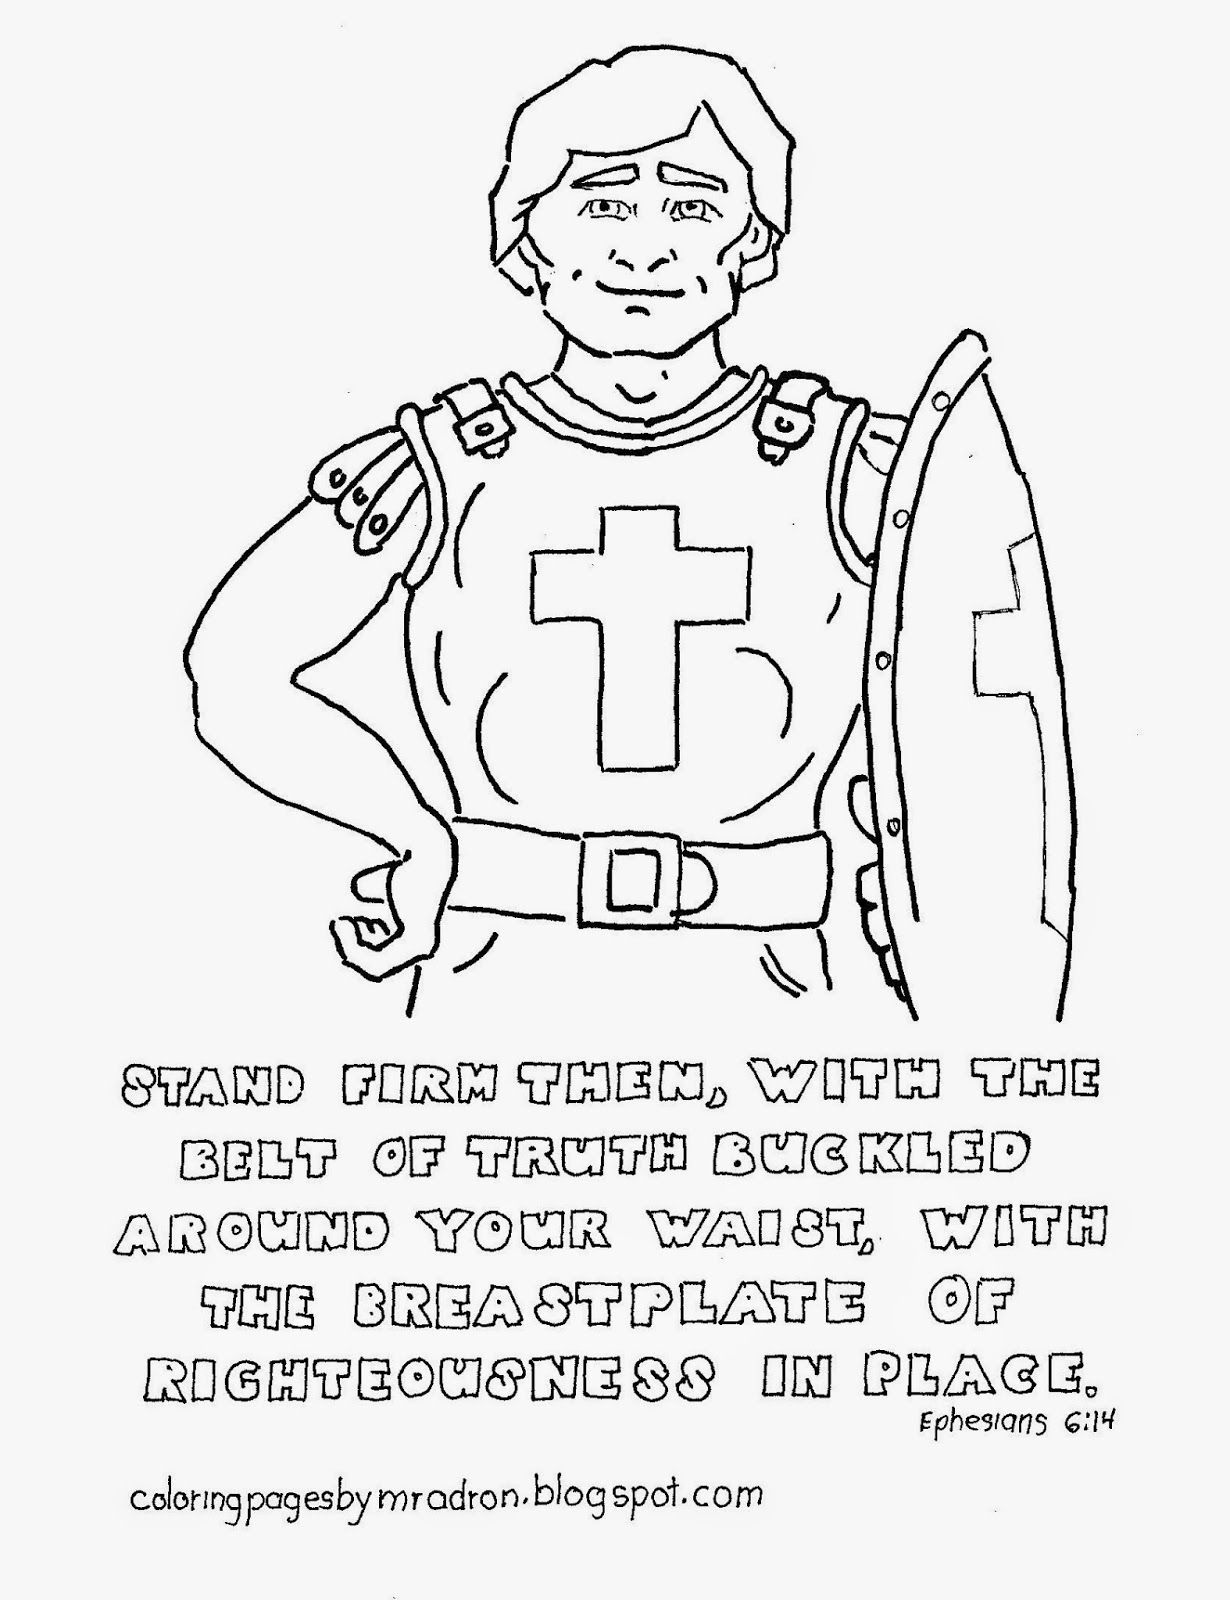 Breastplate Of Righteousness Free Coloring Page With Images